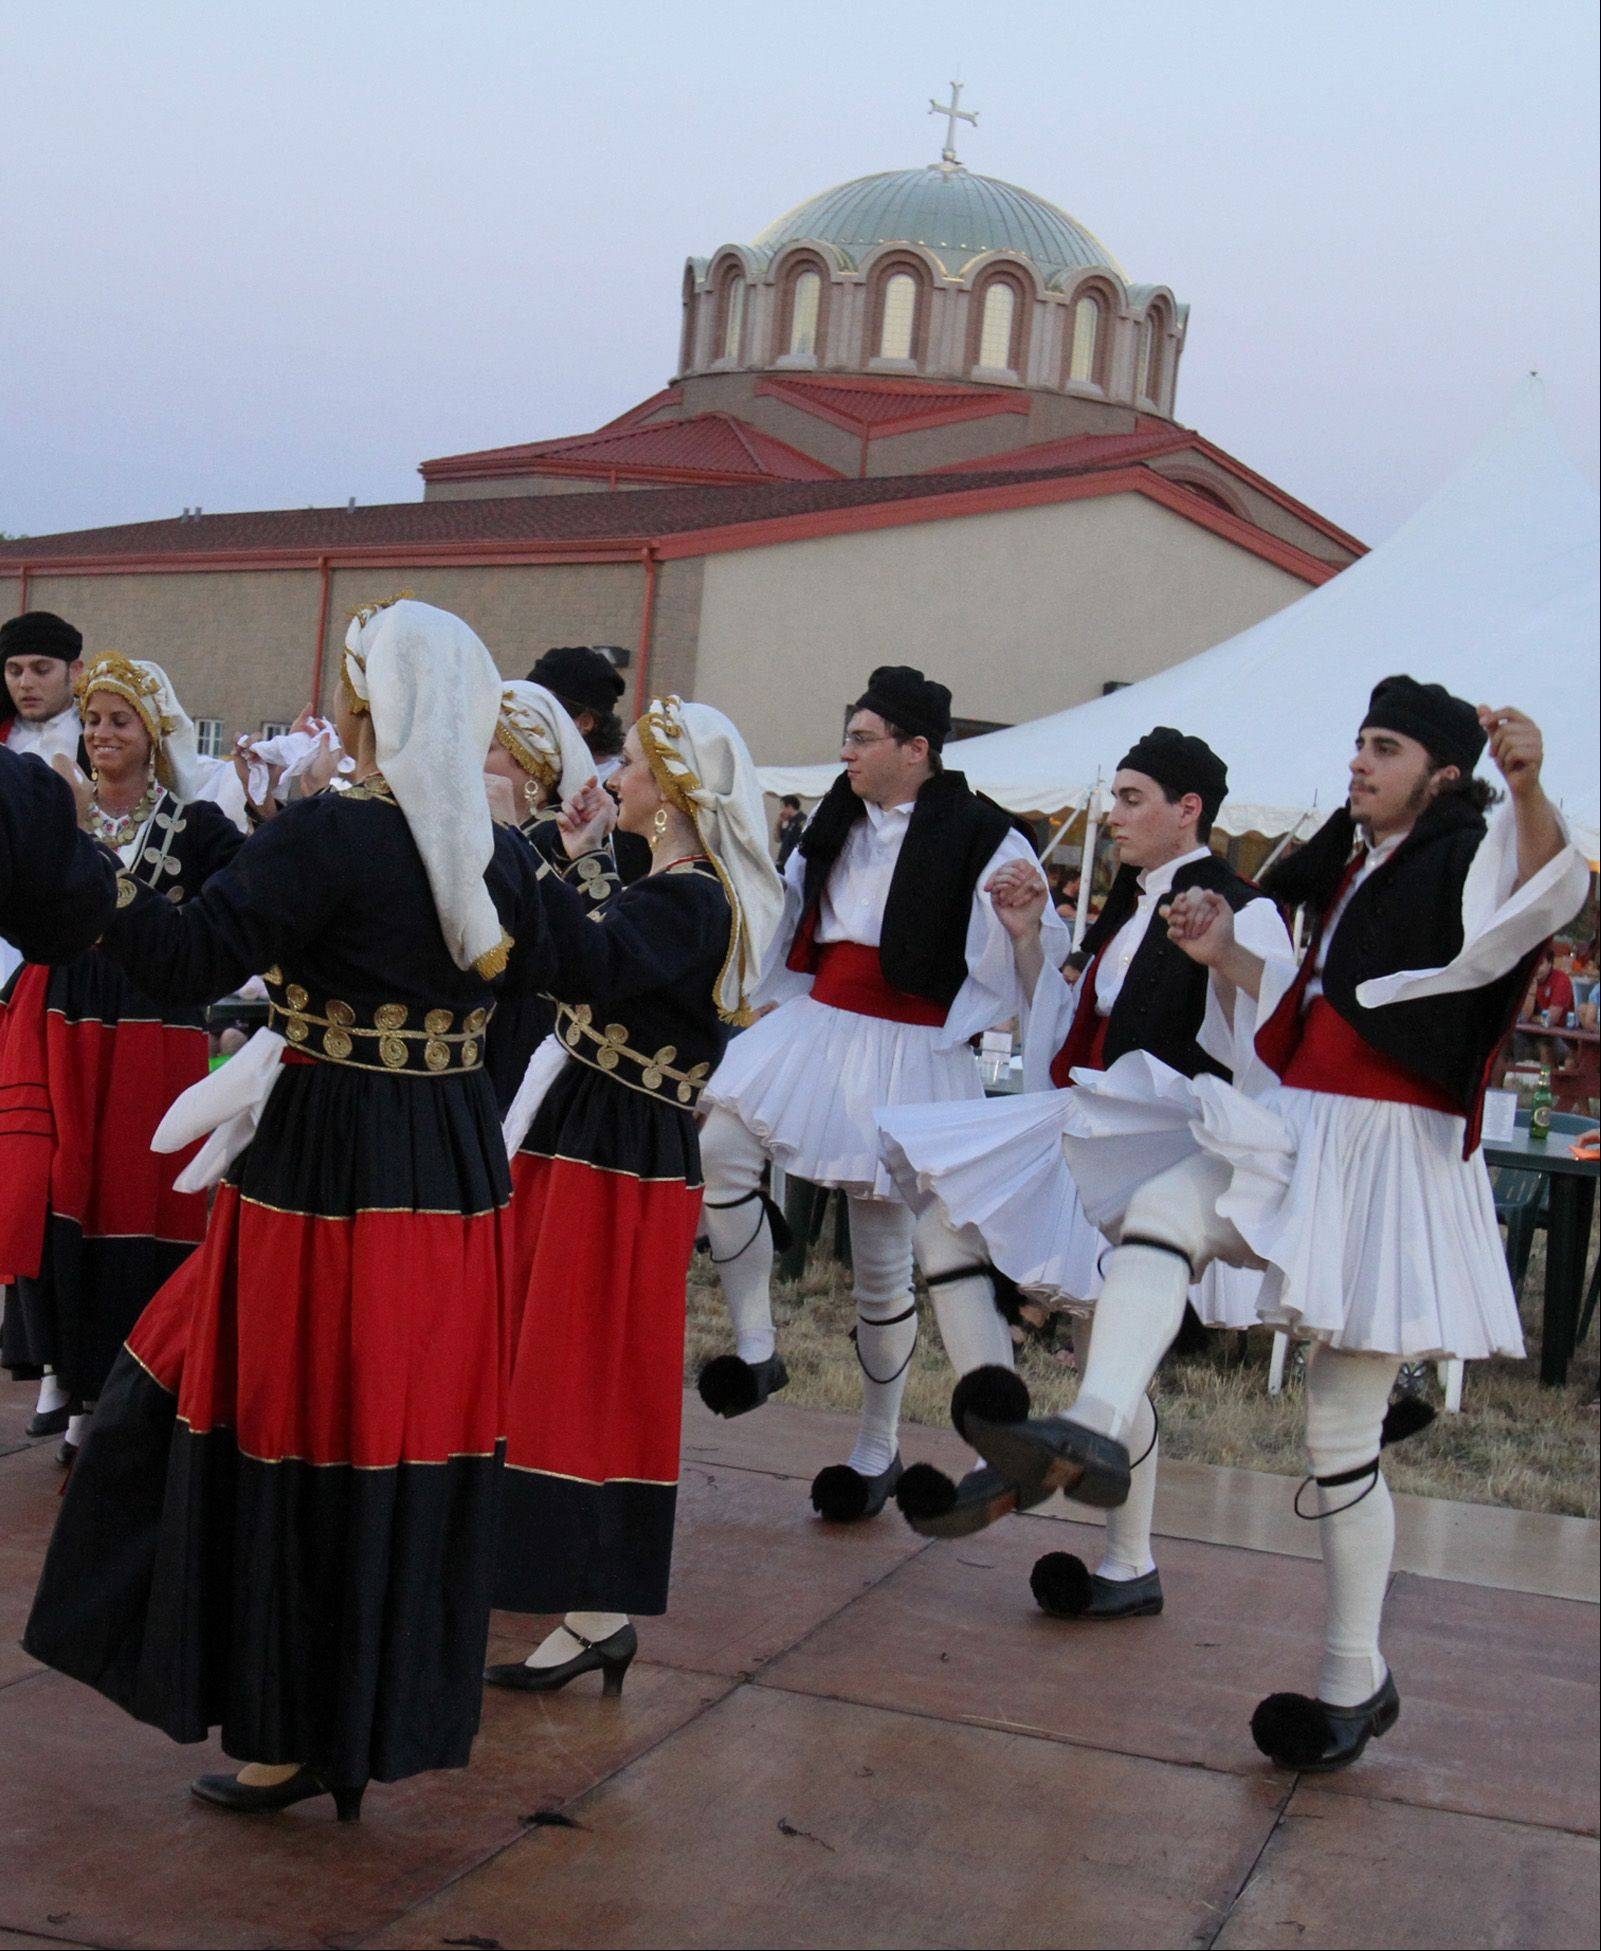 Dionysos DanceTroupe with St. Demetrios Greek Orthodox Church in Elmhurst dances at the Greek fest at St. Demetrios Greek Orthodox Church in Libertyville on Friday. The dance troupe preforms at the festival again on Saturday and Sunday.